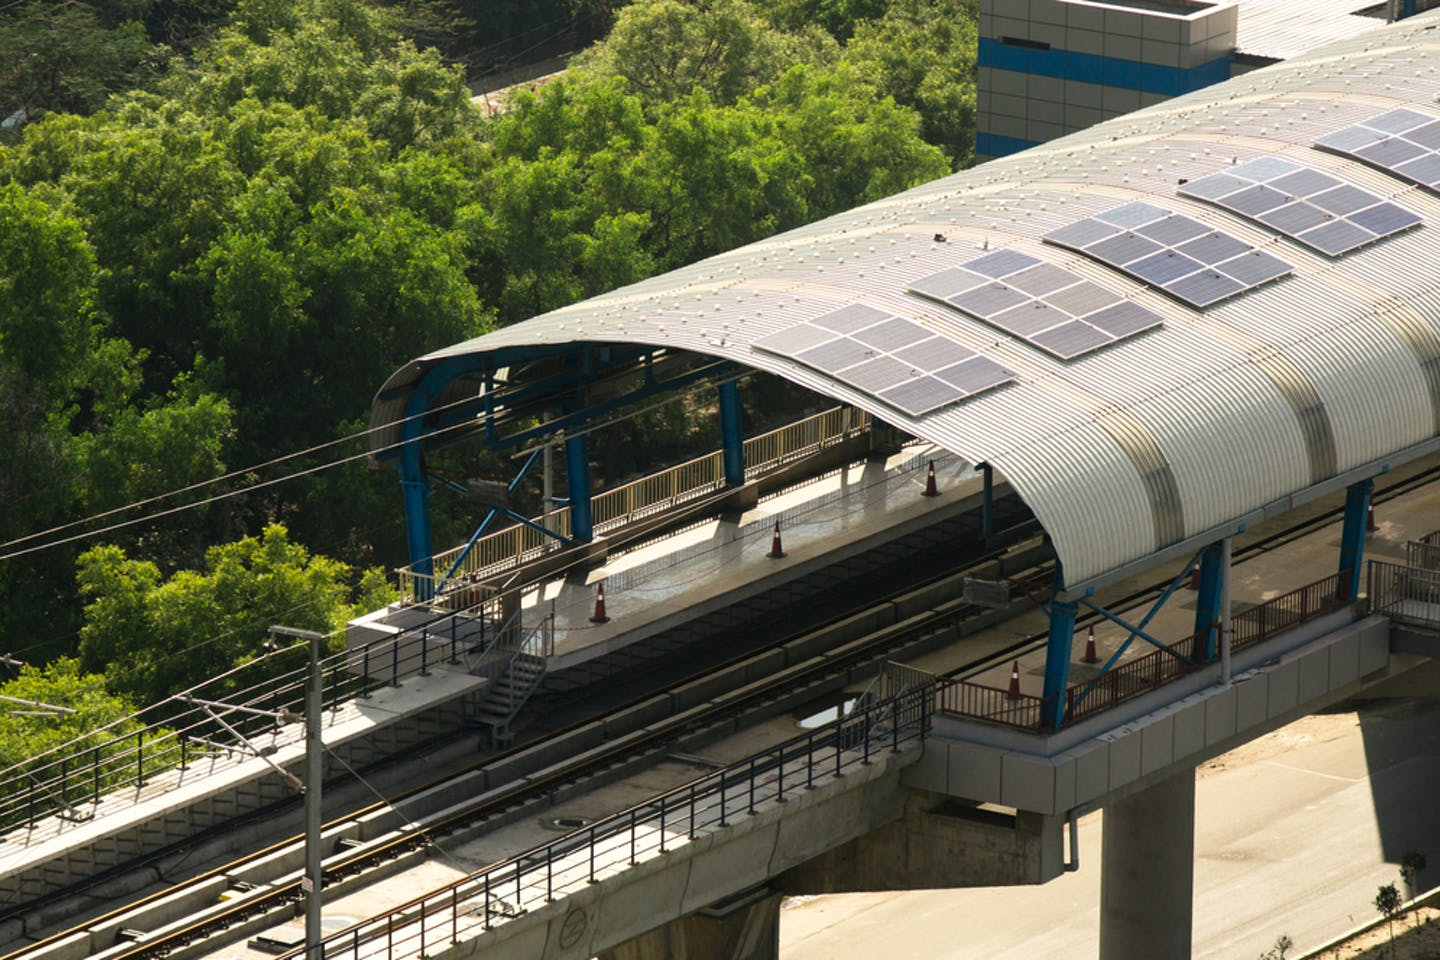 metro station with solar panels installed in New Delhi, India